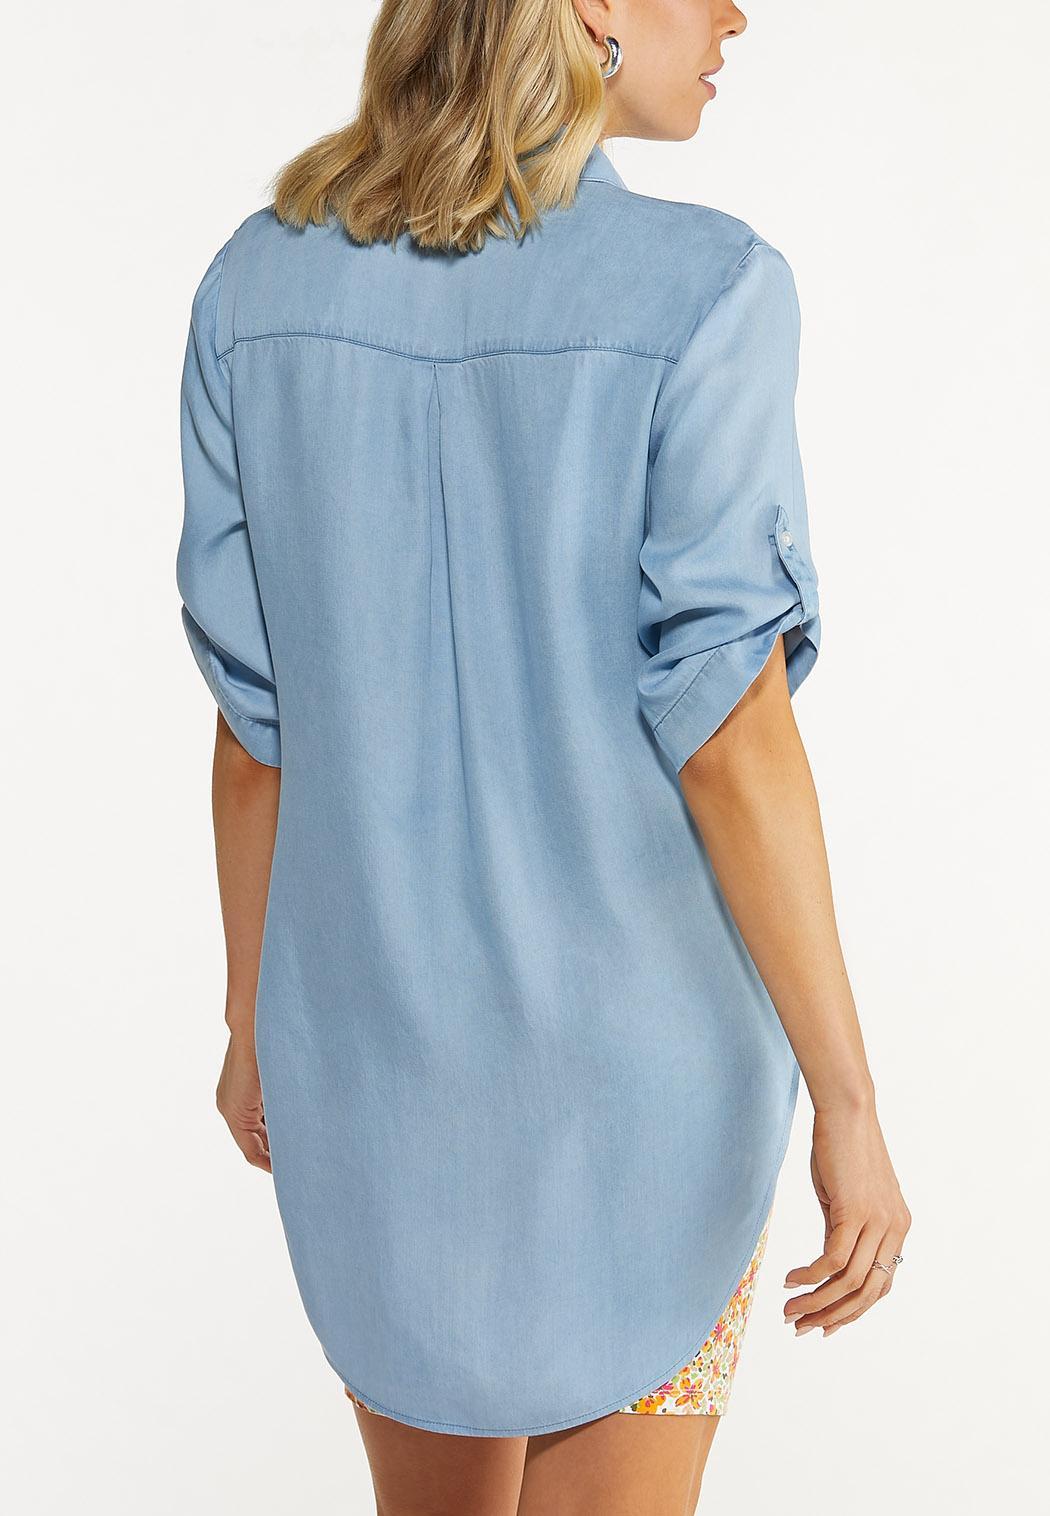 Plus Size Chambray Pullover Top (Item #44546682)